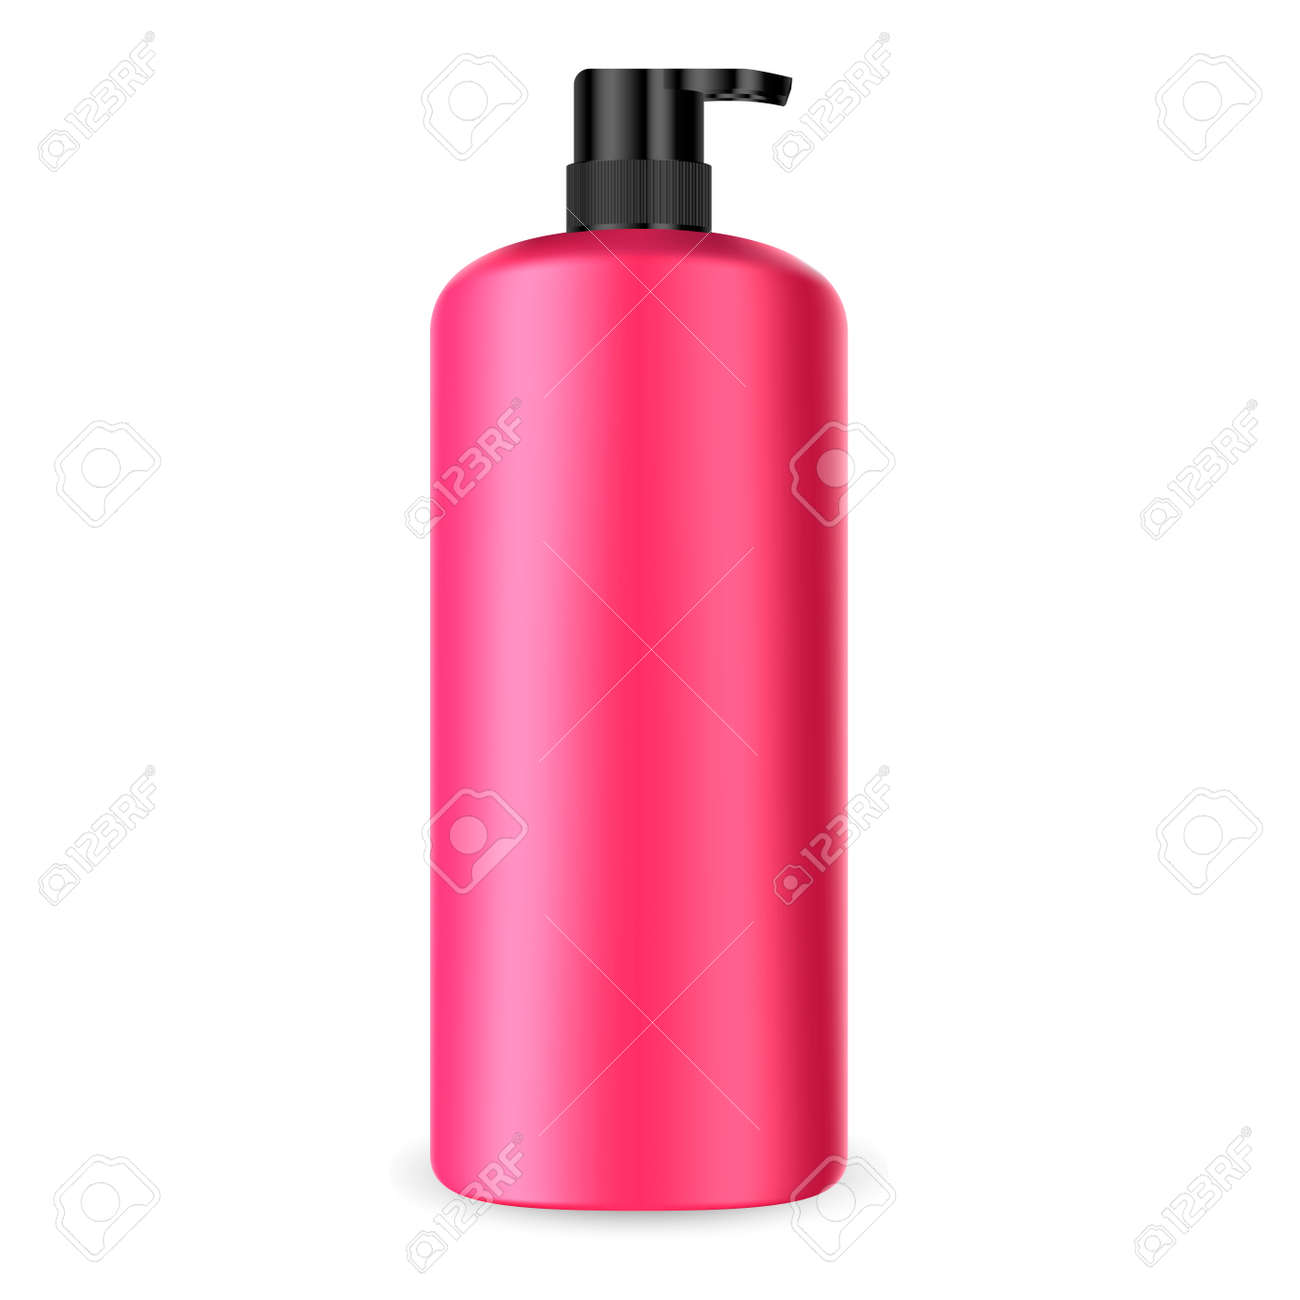 Dispenser Pump Cosmetic Bottle. Batcher Container 3d Mockup. Red Plastic Packaging for Shampoo, Lotion, Hand Cream, Medical Liquid. Sunscreen Treatment Tube with Black Cap. - 122377204